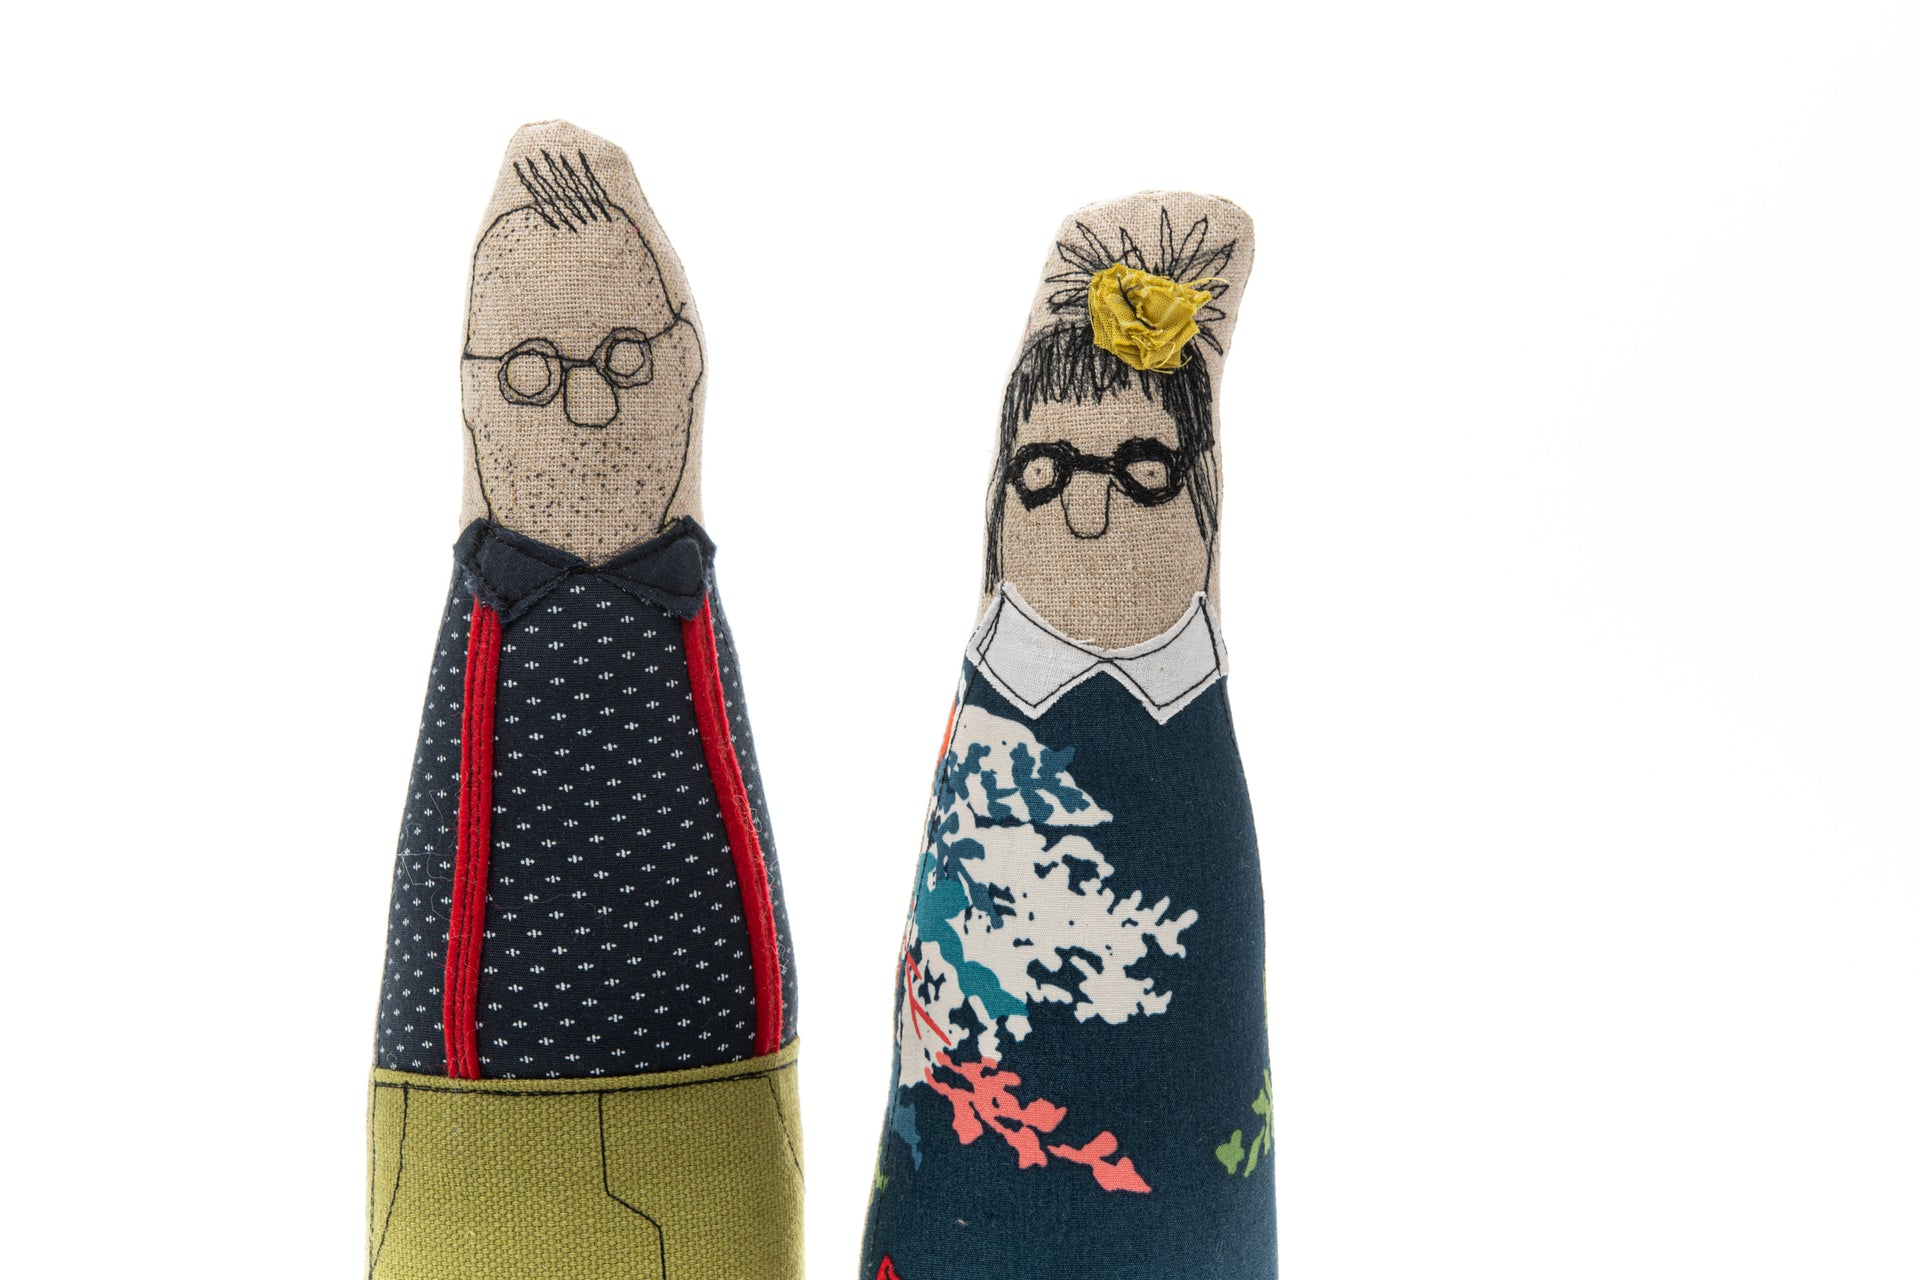 Family portrait Couple dolls Couple gift Handmade decor dolls Hipster Family Cloth Doll Wedding parents Personalised gifts Customize dolls